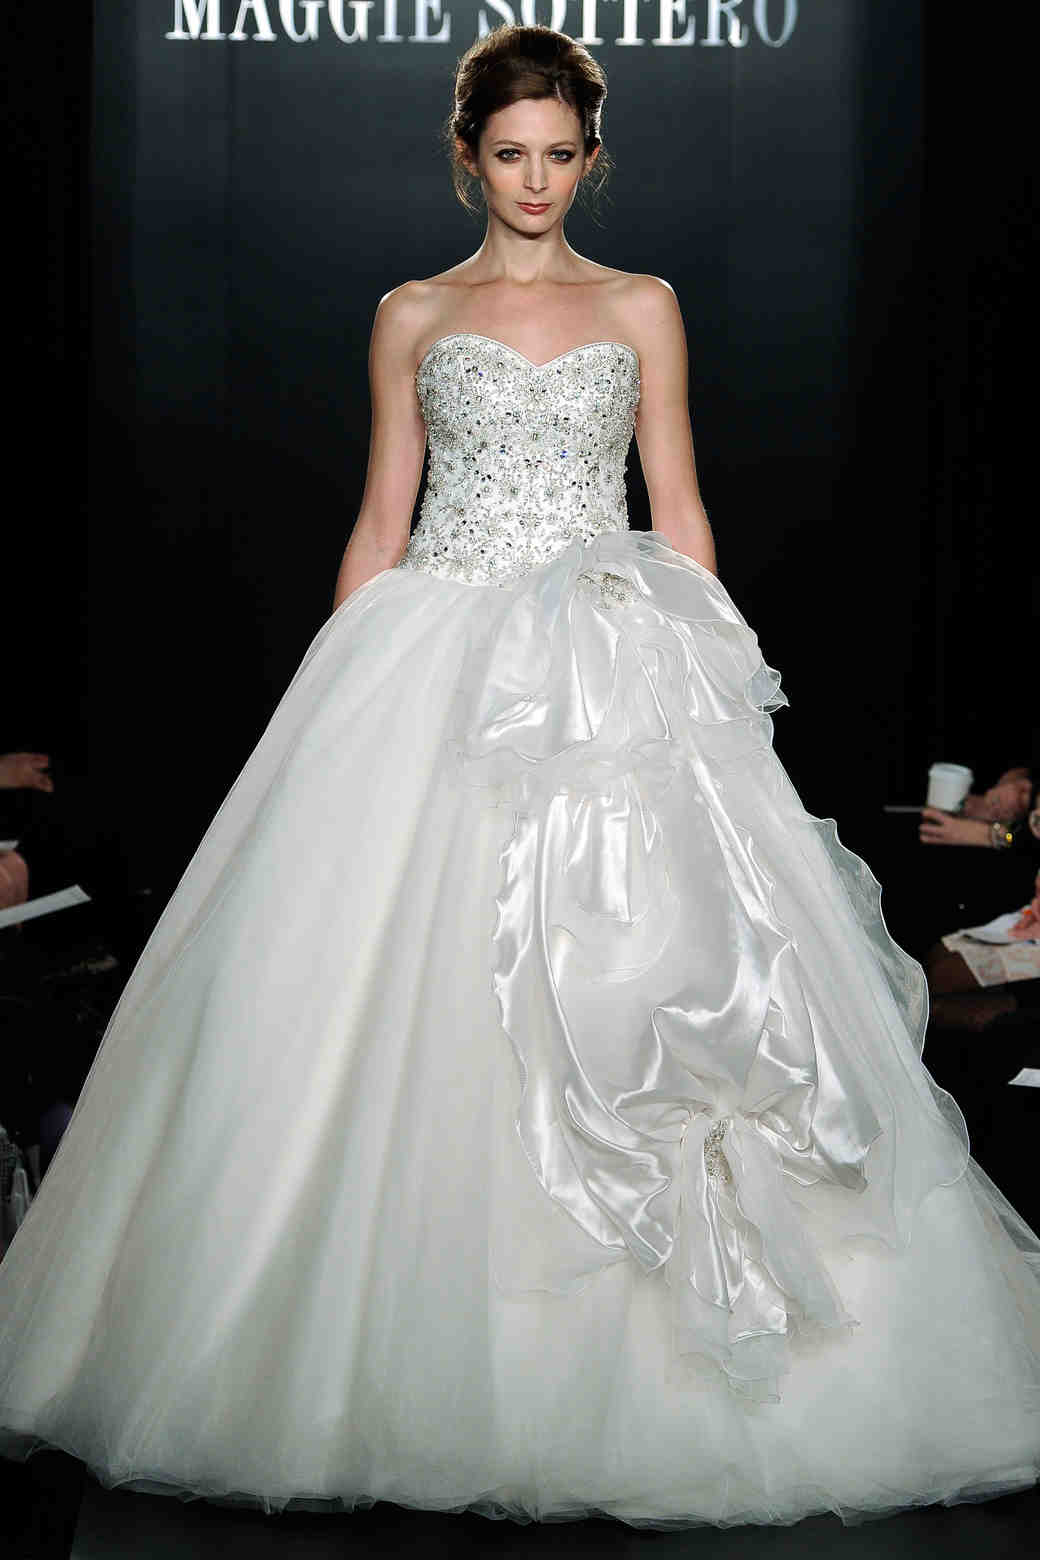 maggie-sottero-fall2012-wd108109_032-df.jpg